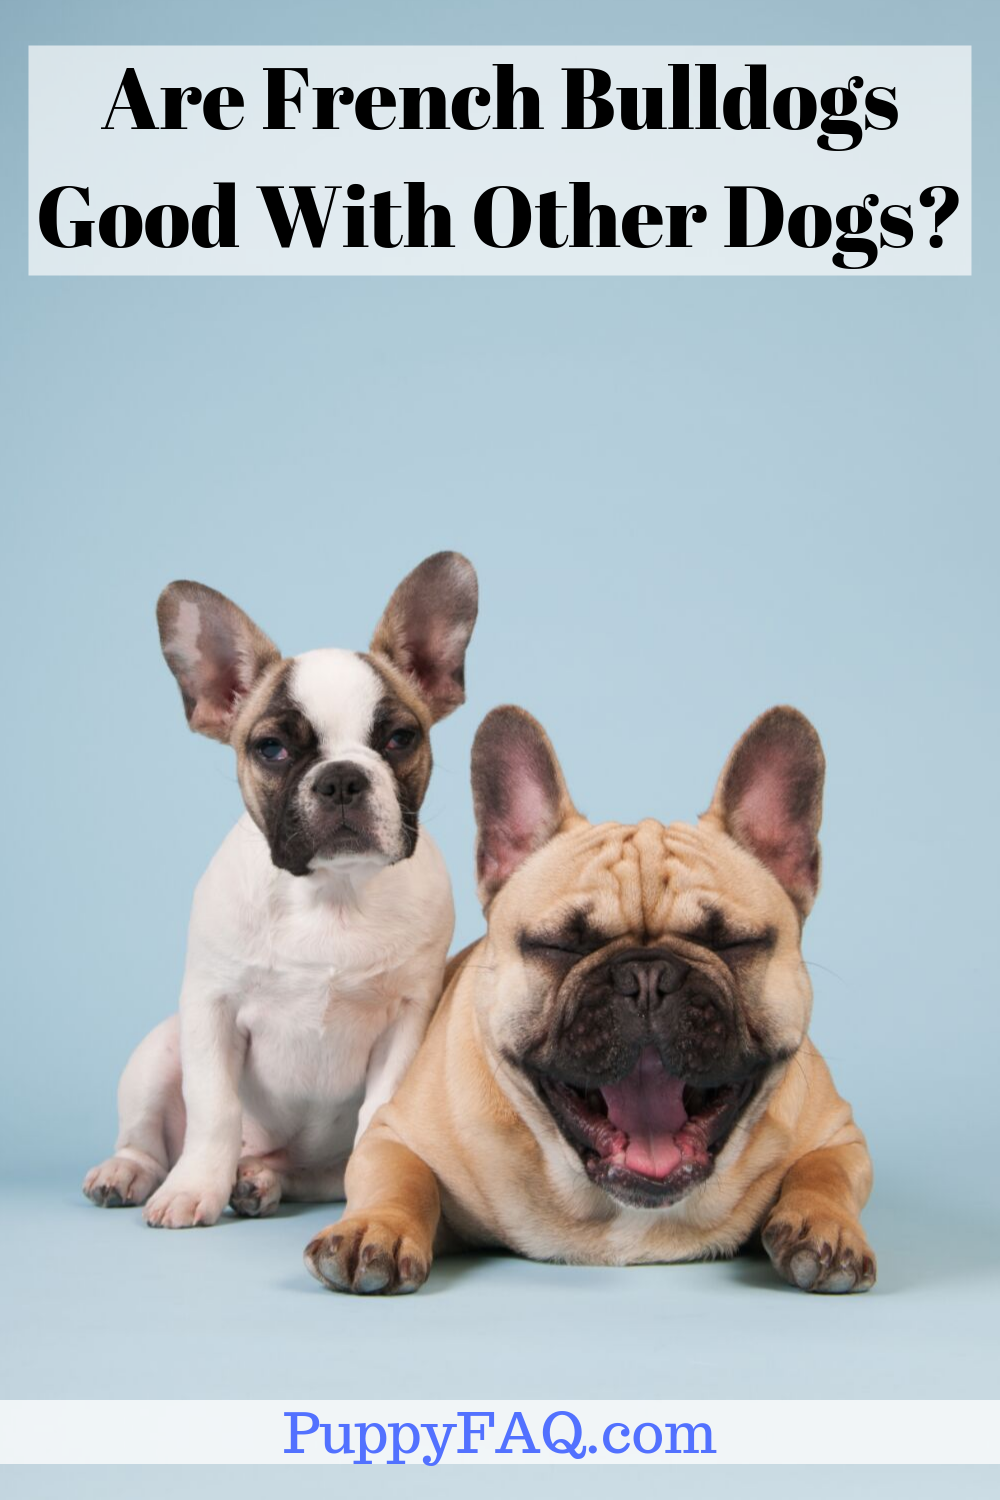 Are French Bulldogs Good With Other Dogs? (With images